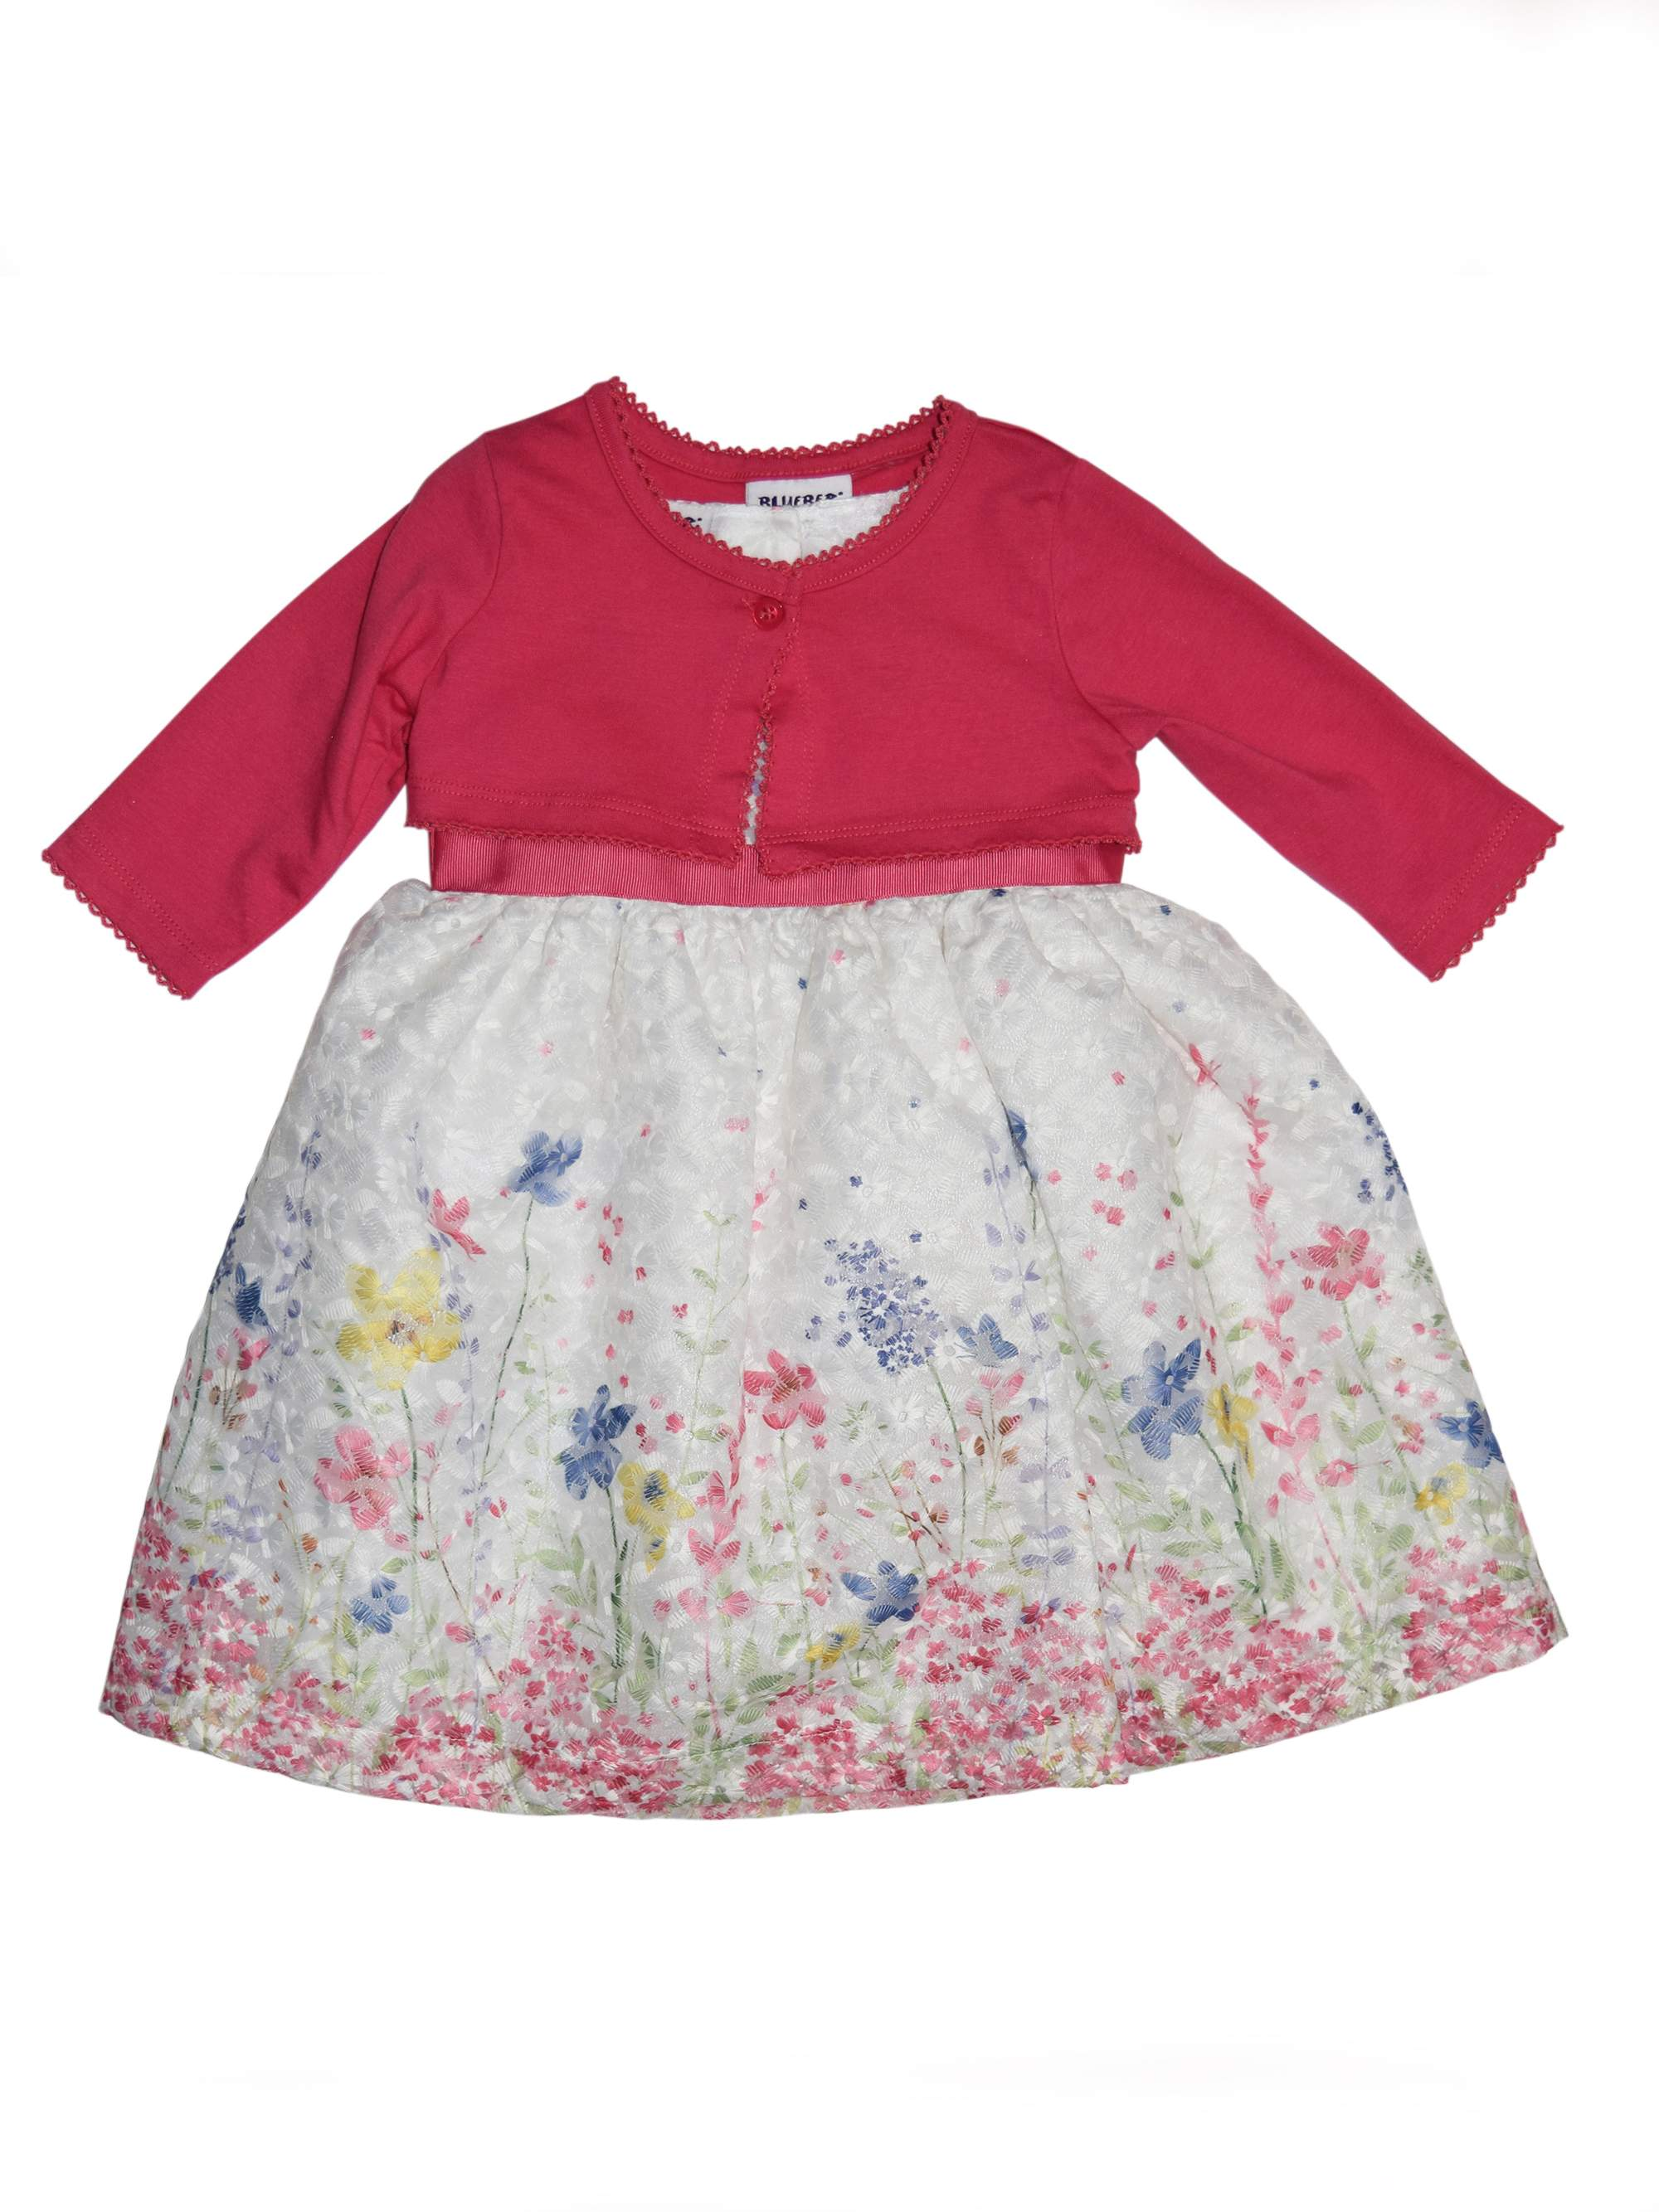 Printed Lace Easter Dress and Shrug Cardigan, 2-Piece Set (Little Girls)